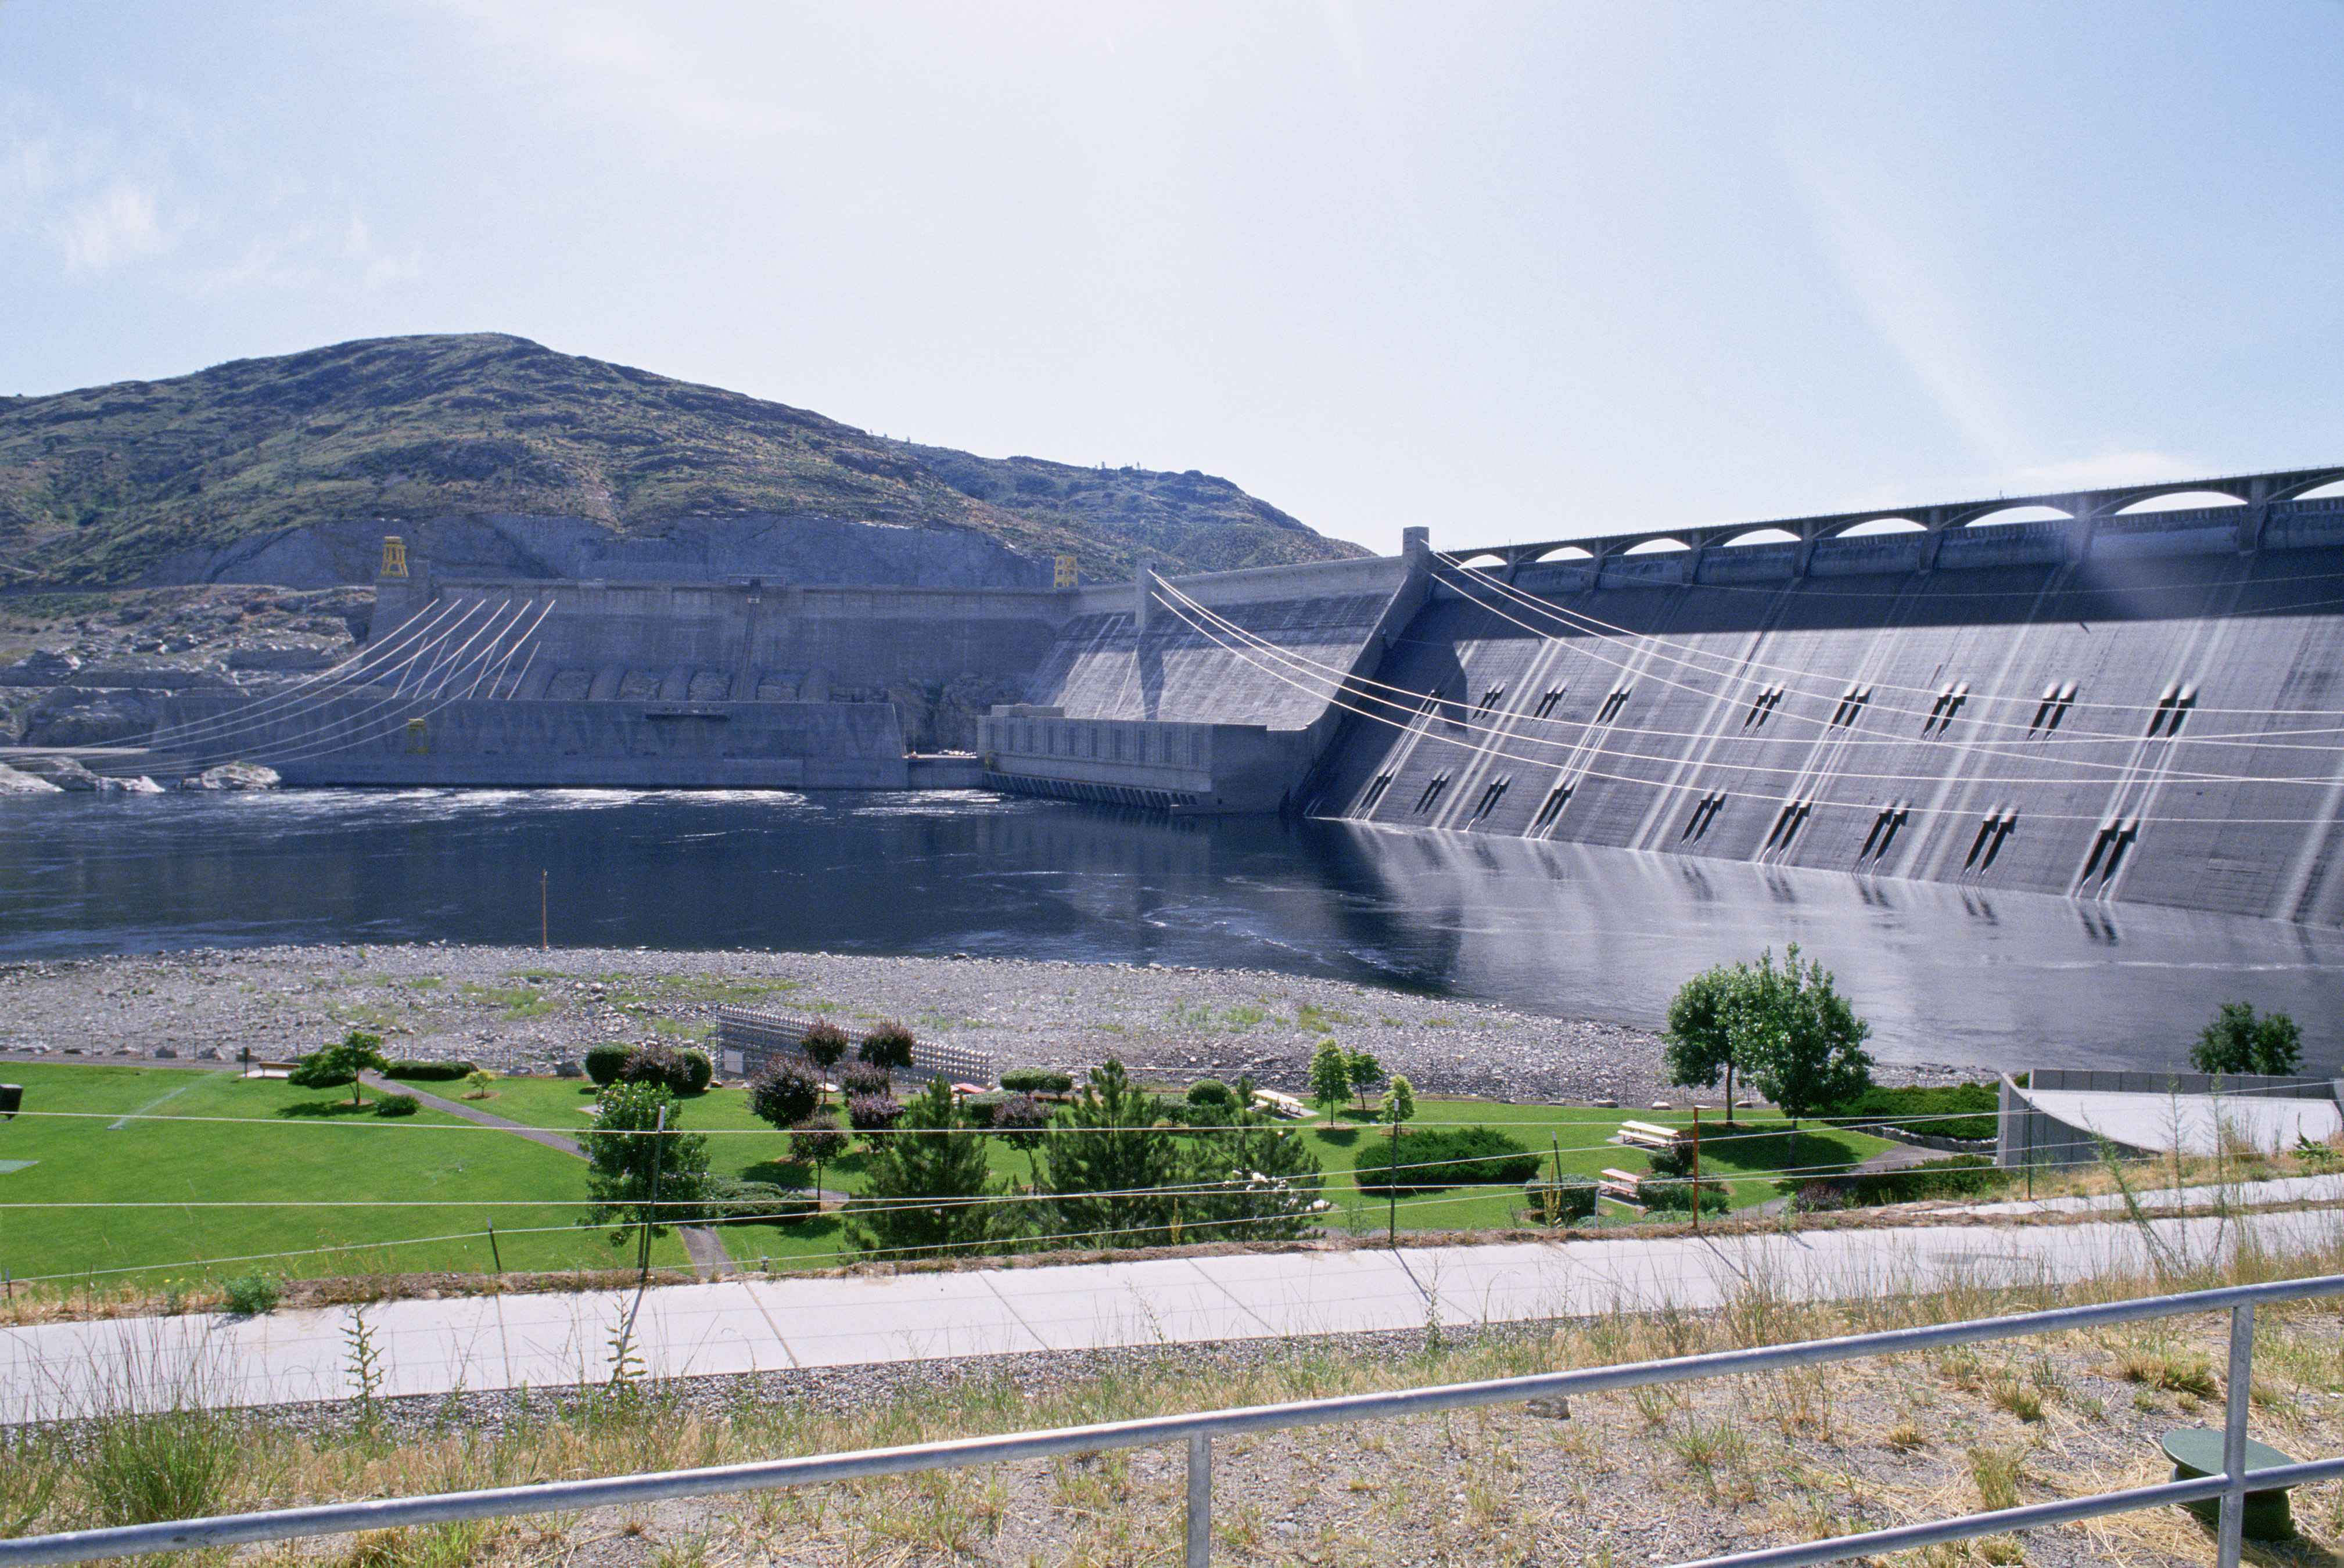 160k Miles of Rivers Could Lose Free-Flowing Status Due to Hydropower